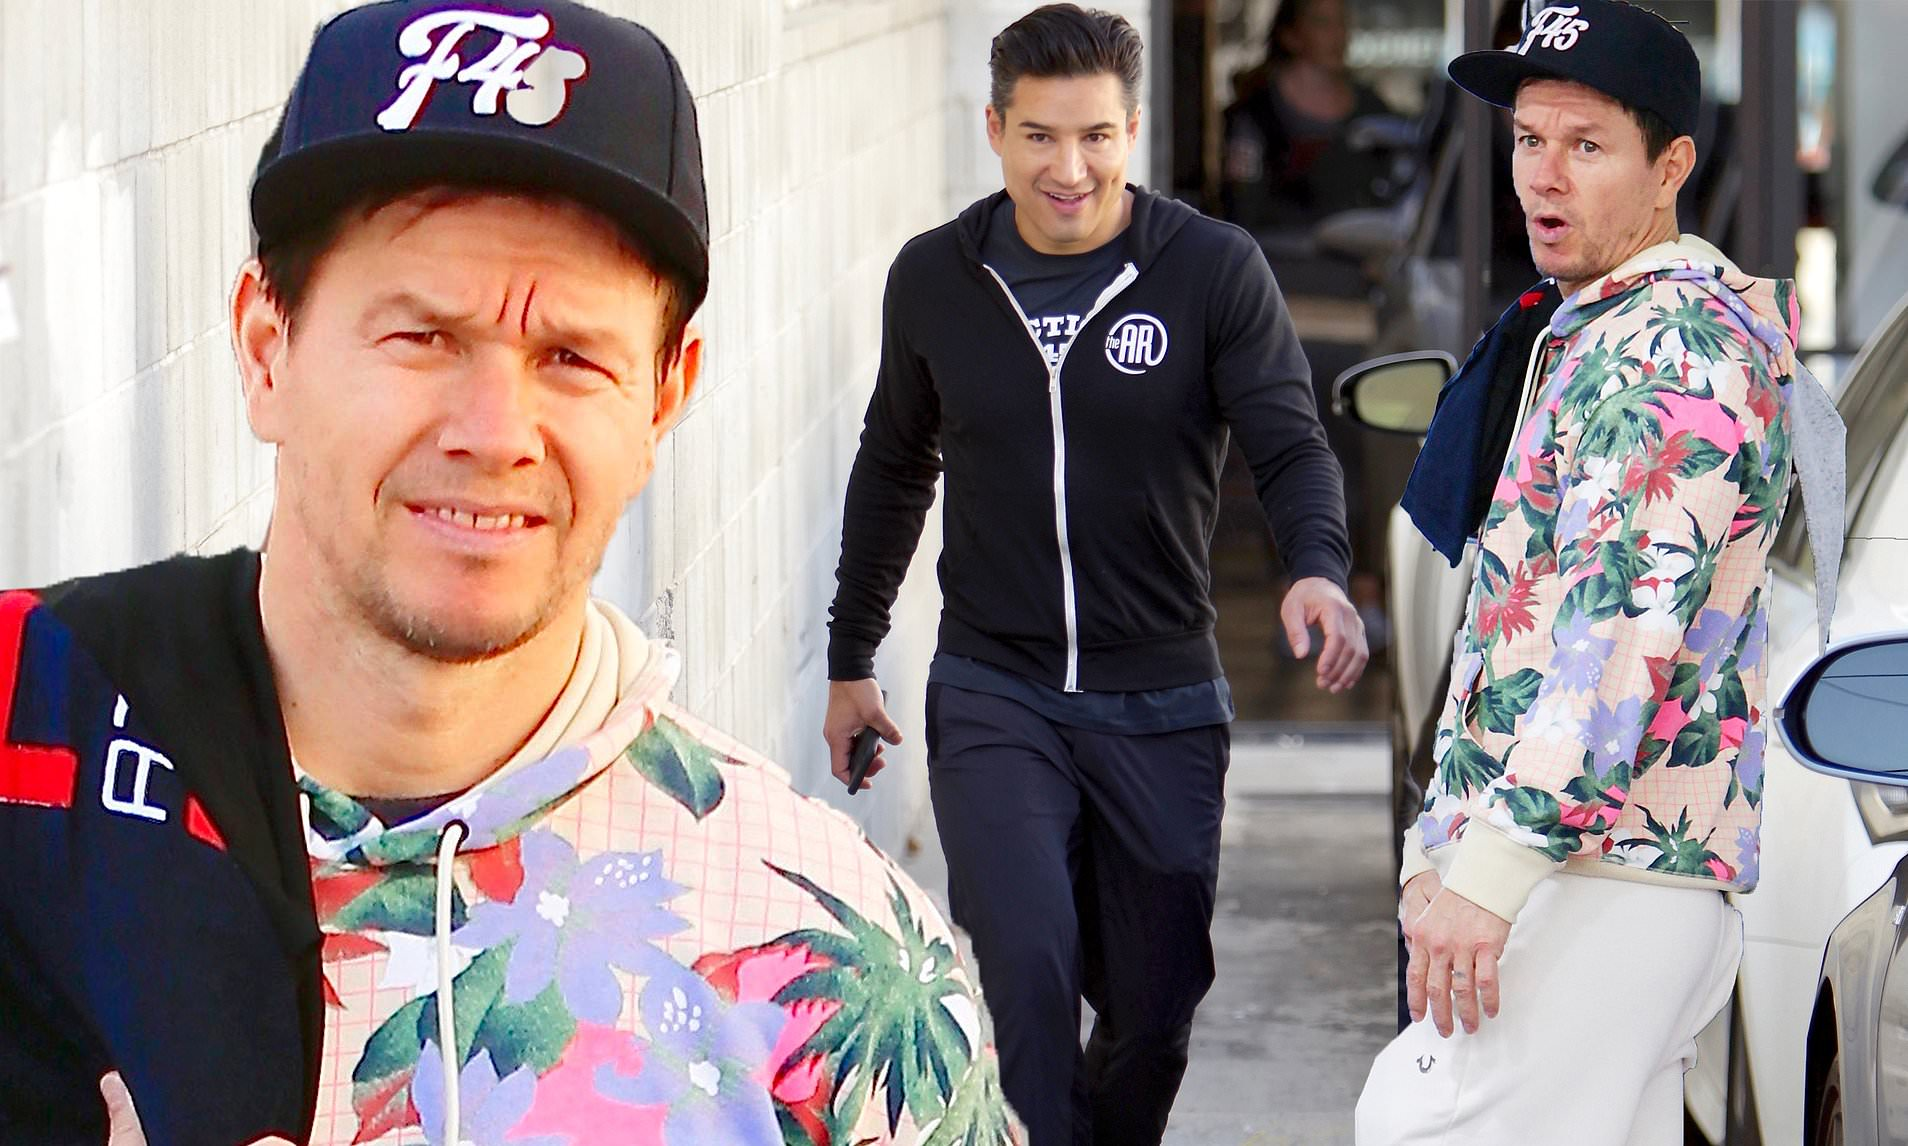 Mark Wahlberg and Mario Lopez Slammed for Joint Training at Gym After Encouraging Fans to Stay Home Amid the Pandemic